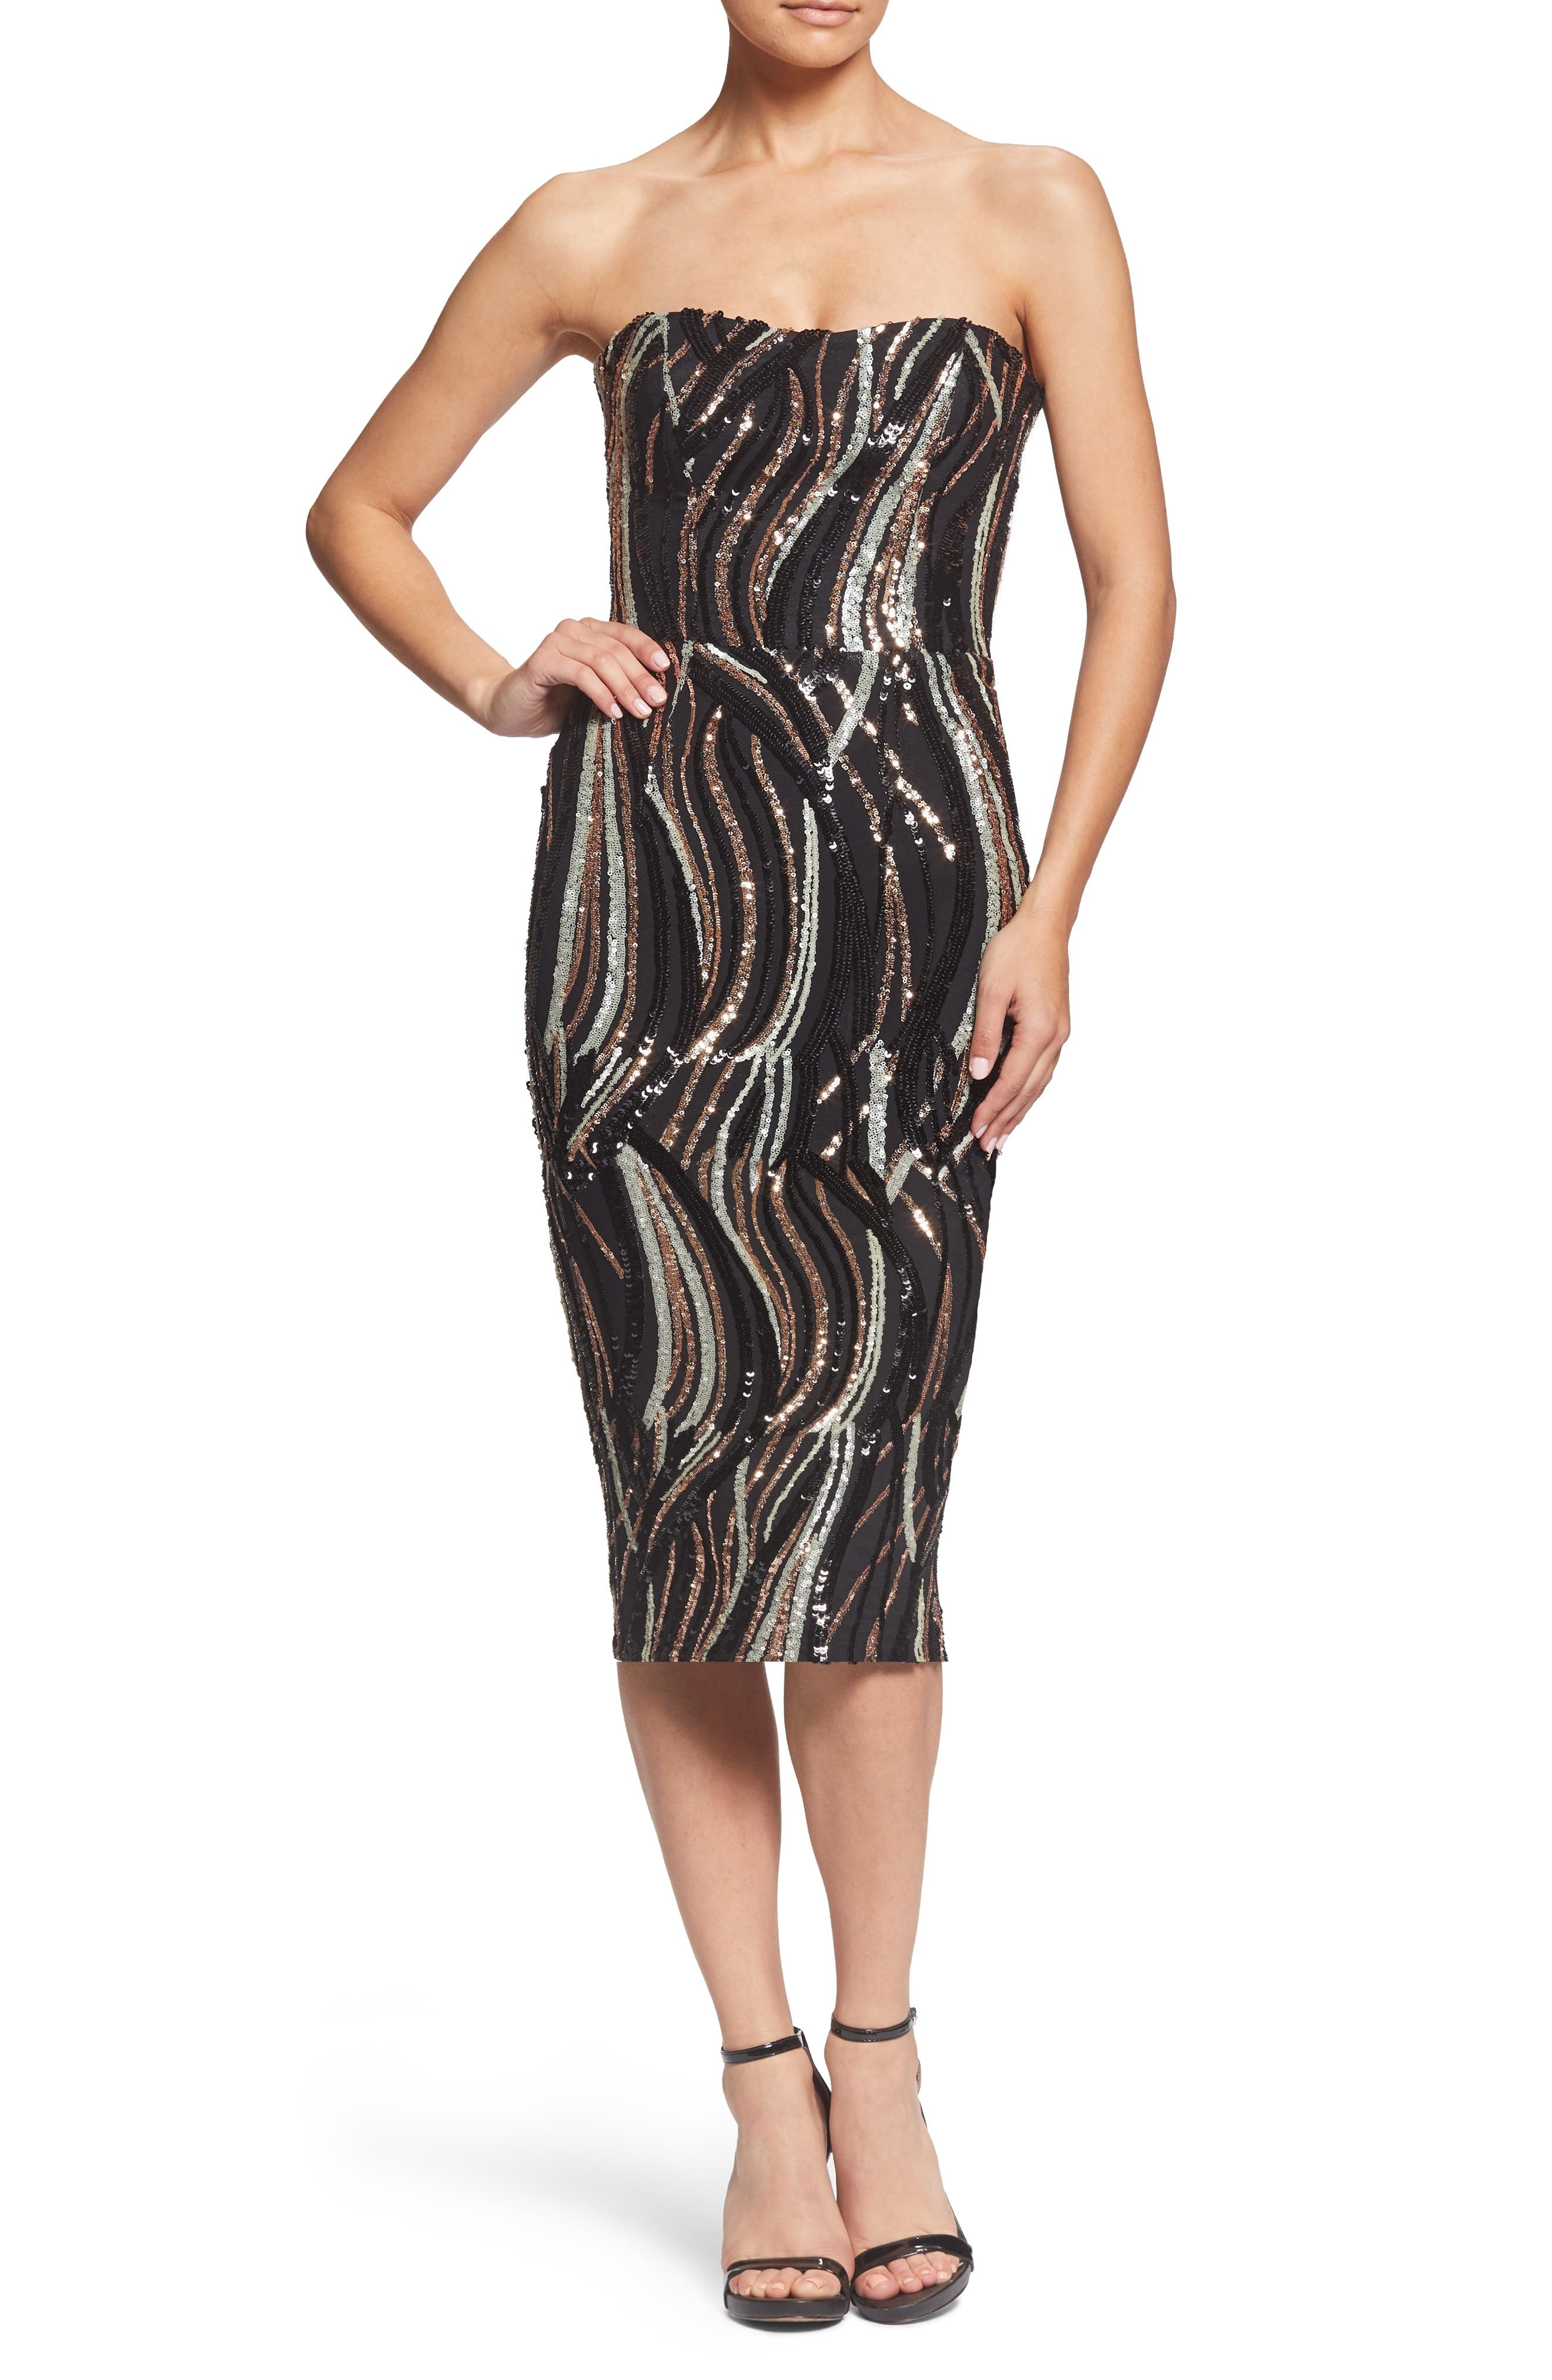 Claire Swirl Stripe Strapless Body-Con Dress,                         Main,                         color, BLACK/ BRONZE/ BONE